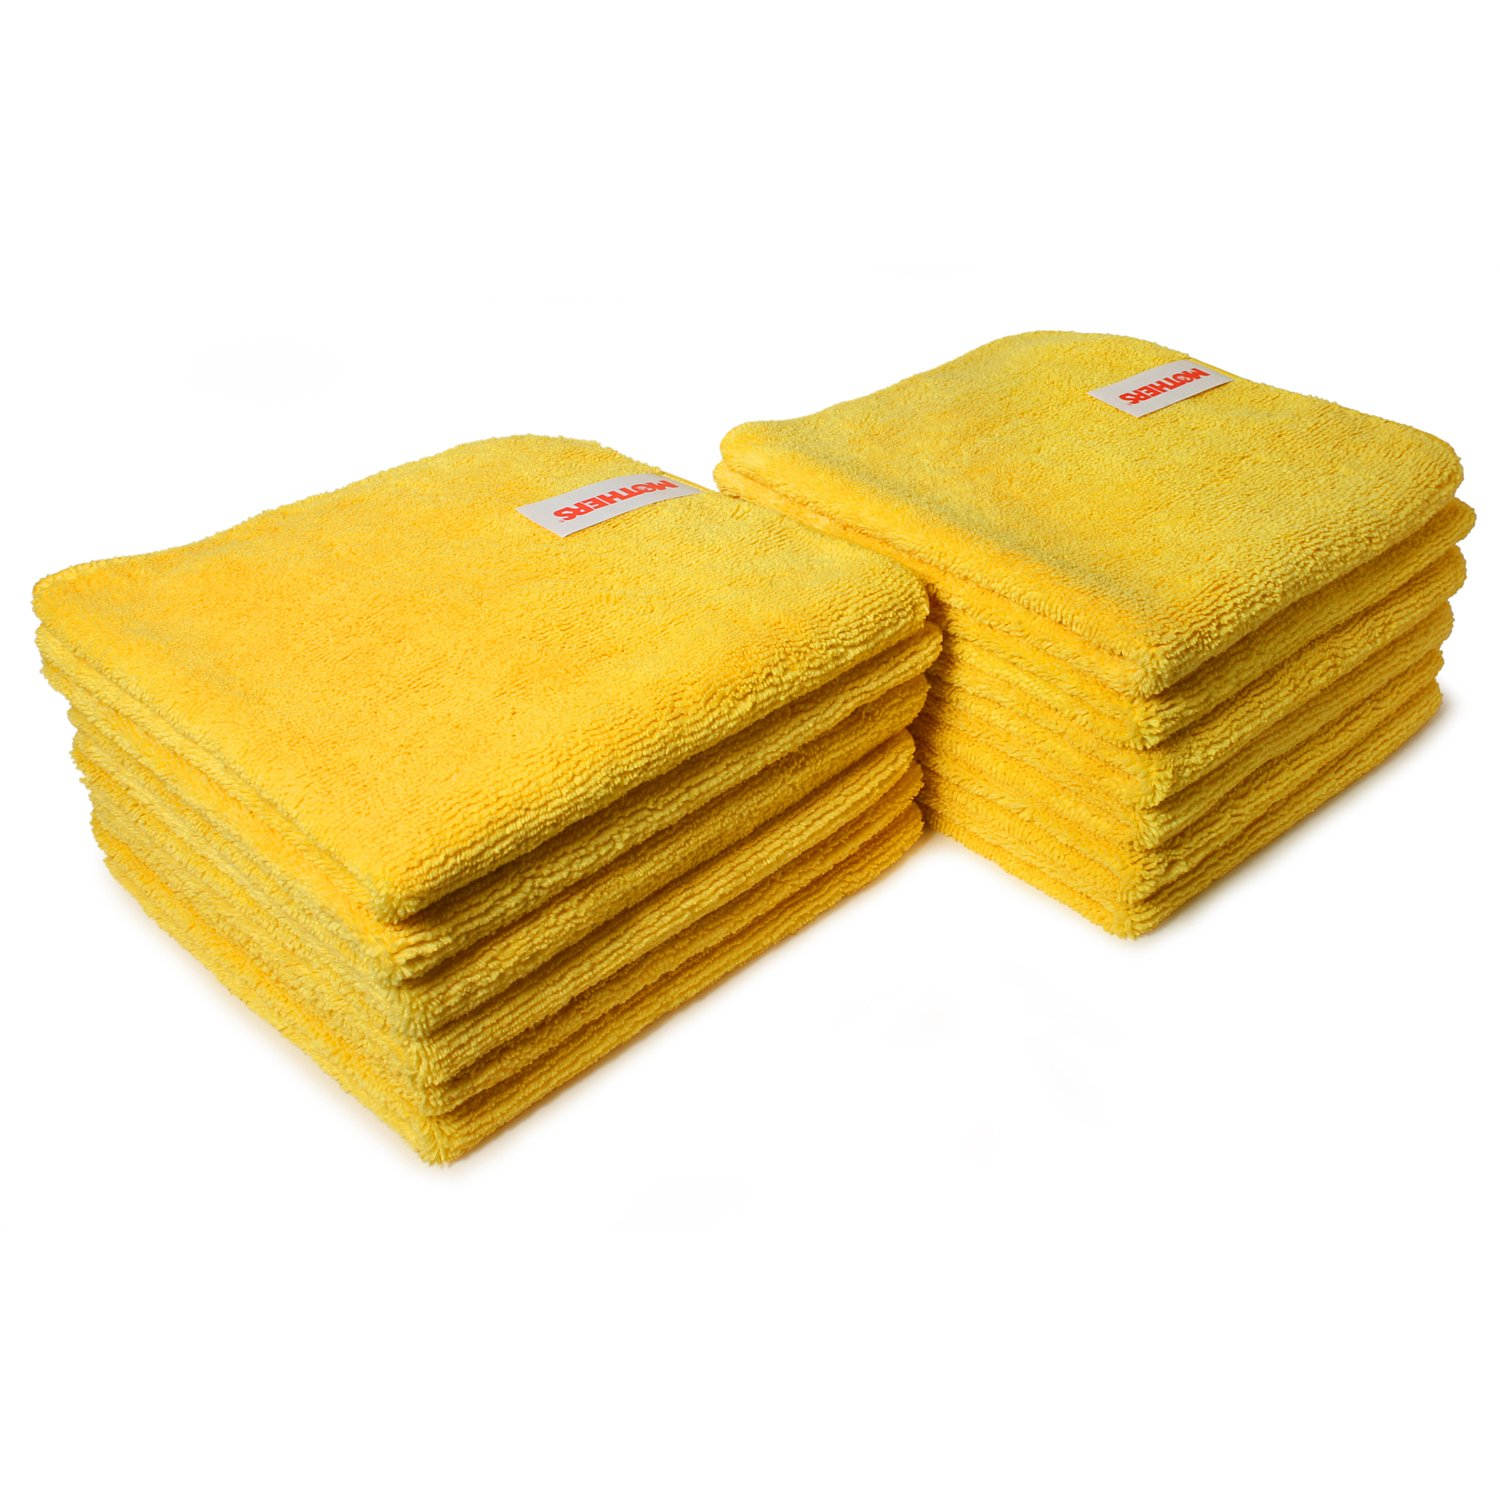 Mothers 90-90004 Professional Grade Premium Microfiber Towels, Gold, (Pack of 12) by Mothers